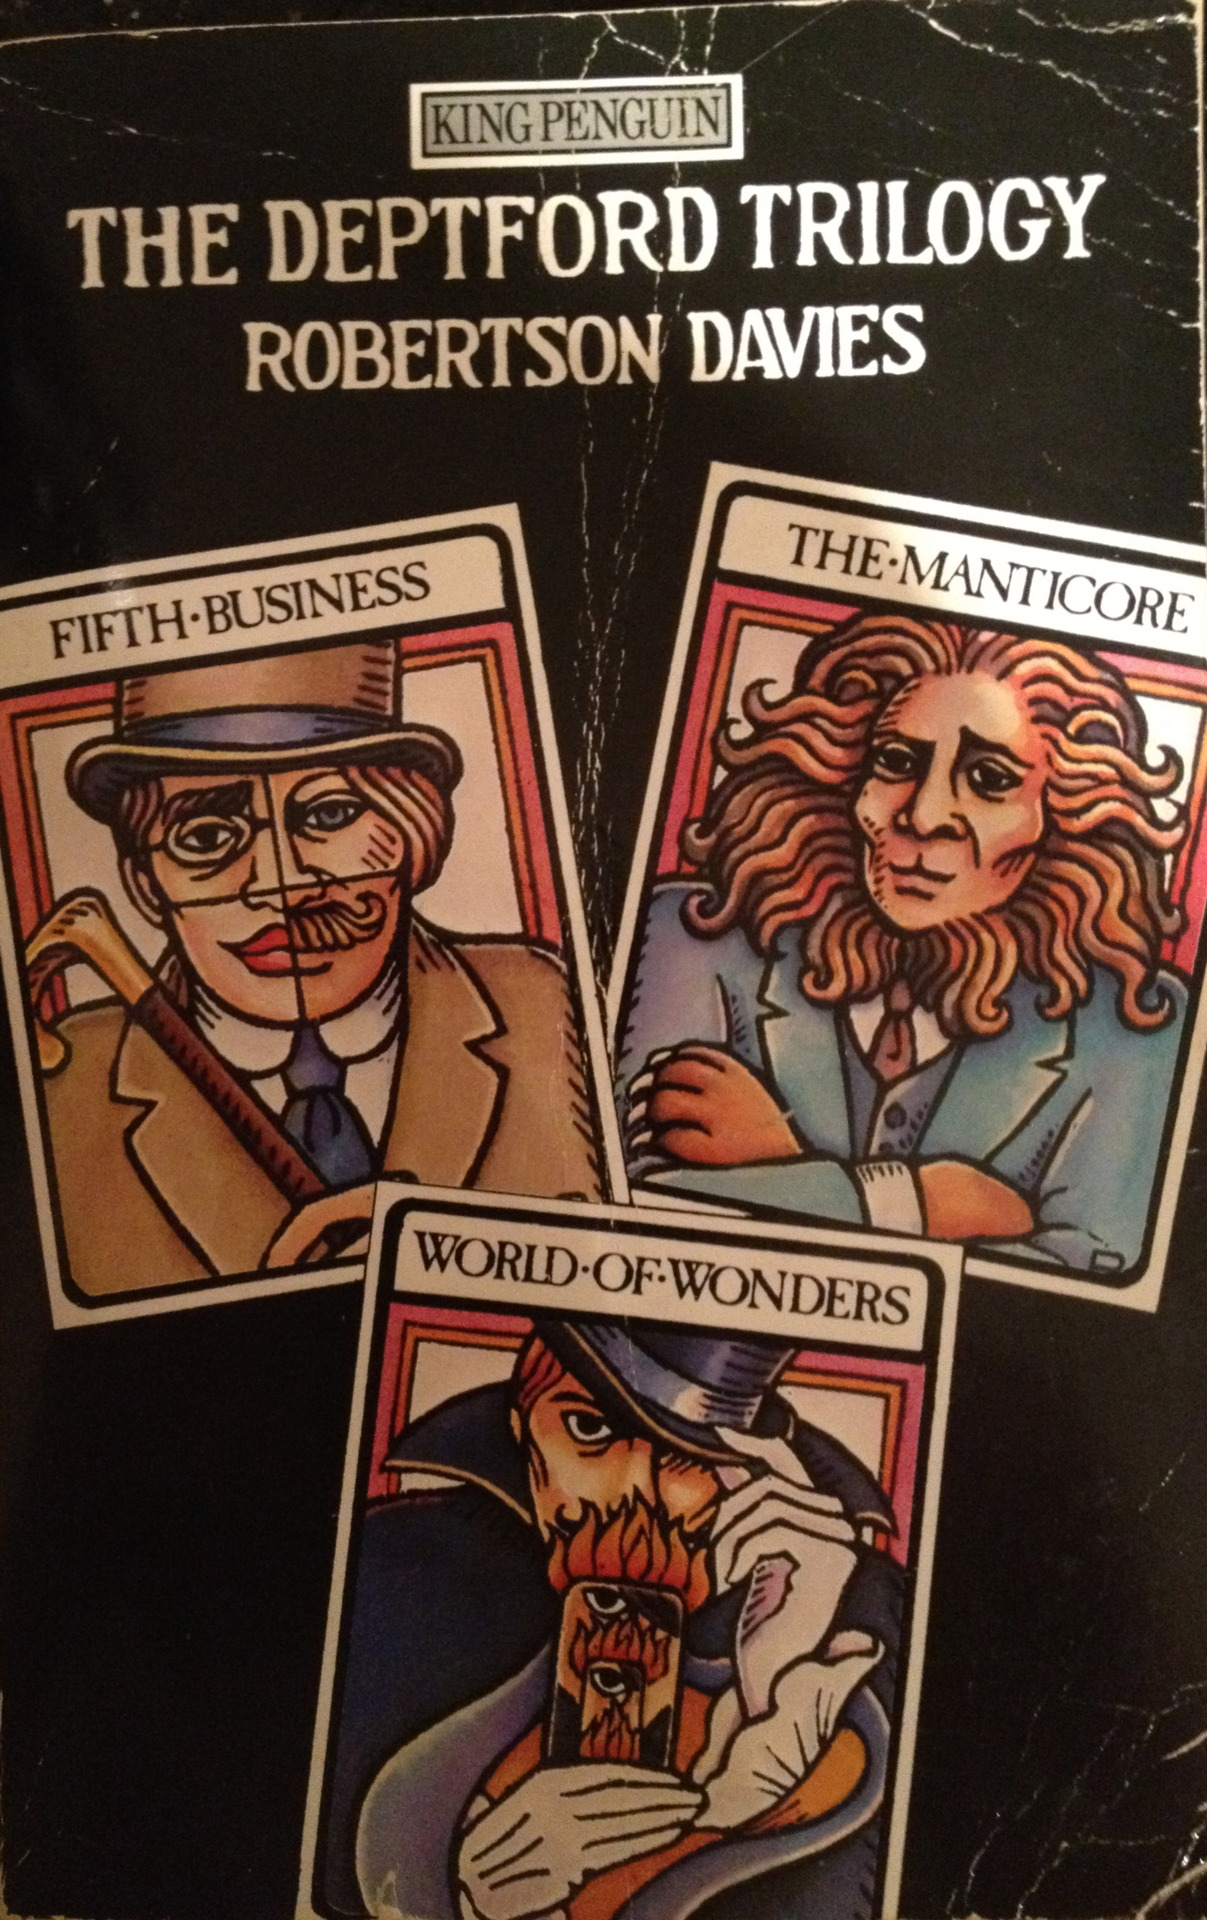 In the early 1980s, when I first read these three novels by  Robertson Davies , I knew nothing about him, though he was perhaps the most famous writer in Canada by then. I sought out and read everything he had ever written, as well as everything he continued to write in the next decade until his death. It was a satisfying journey. It is a journey I would take again, though I don't often re-read books anymore.      [Originally posted on my discontinued This Old Book Tumblr.]